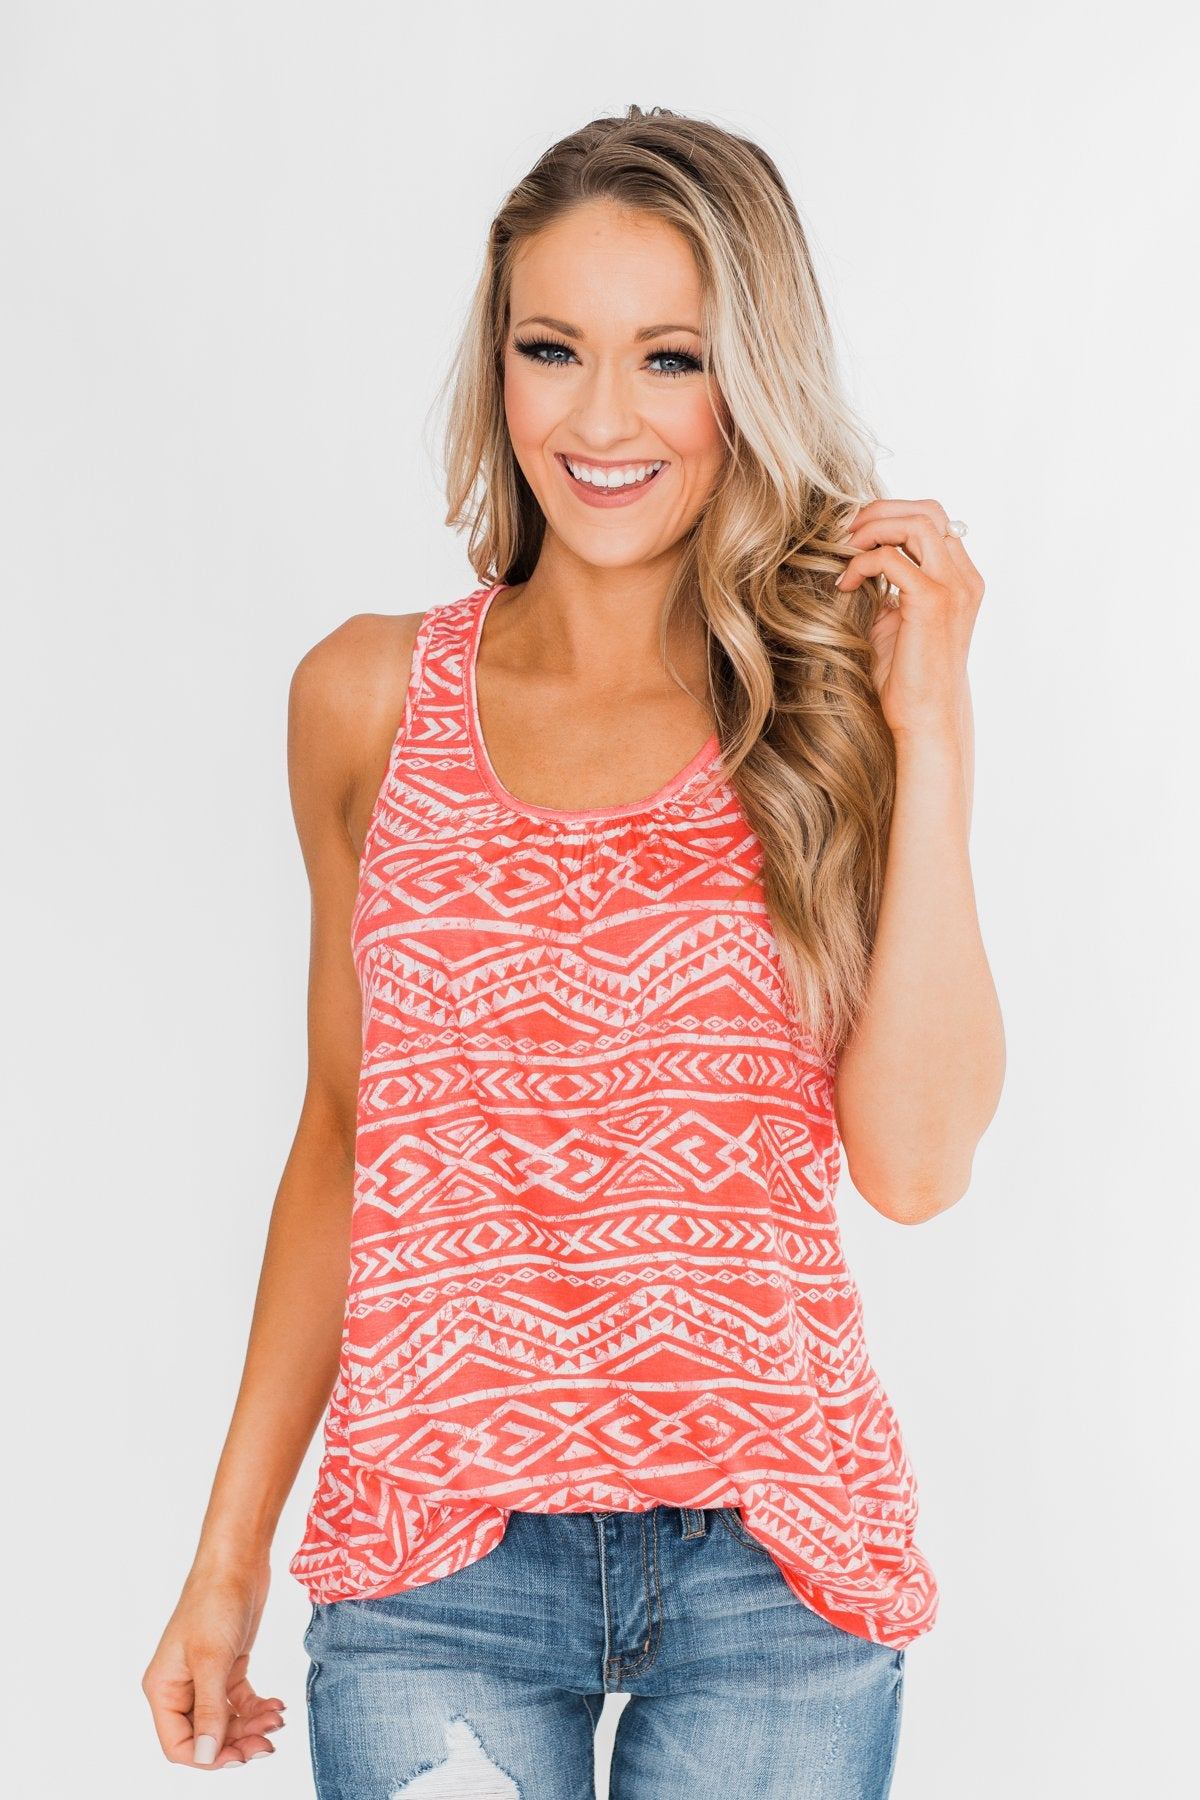 Doing Just Fine Aztec Tank Top- Coral